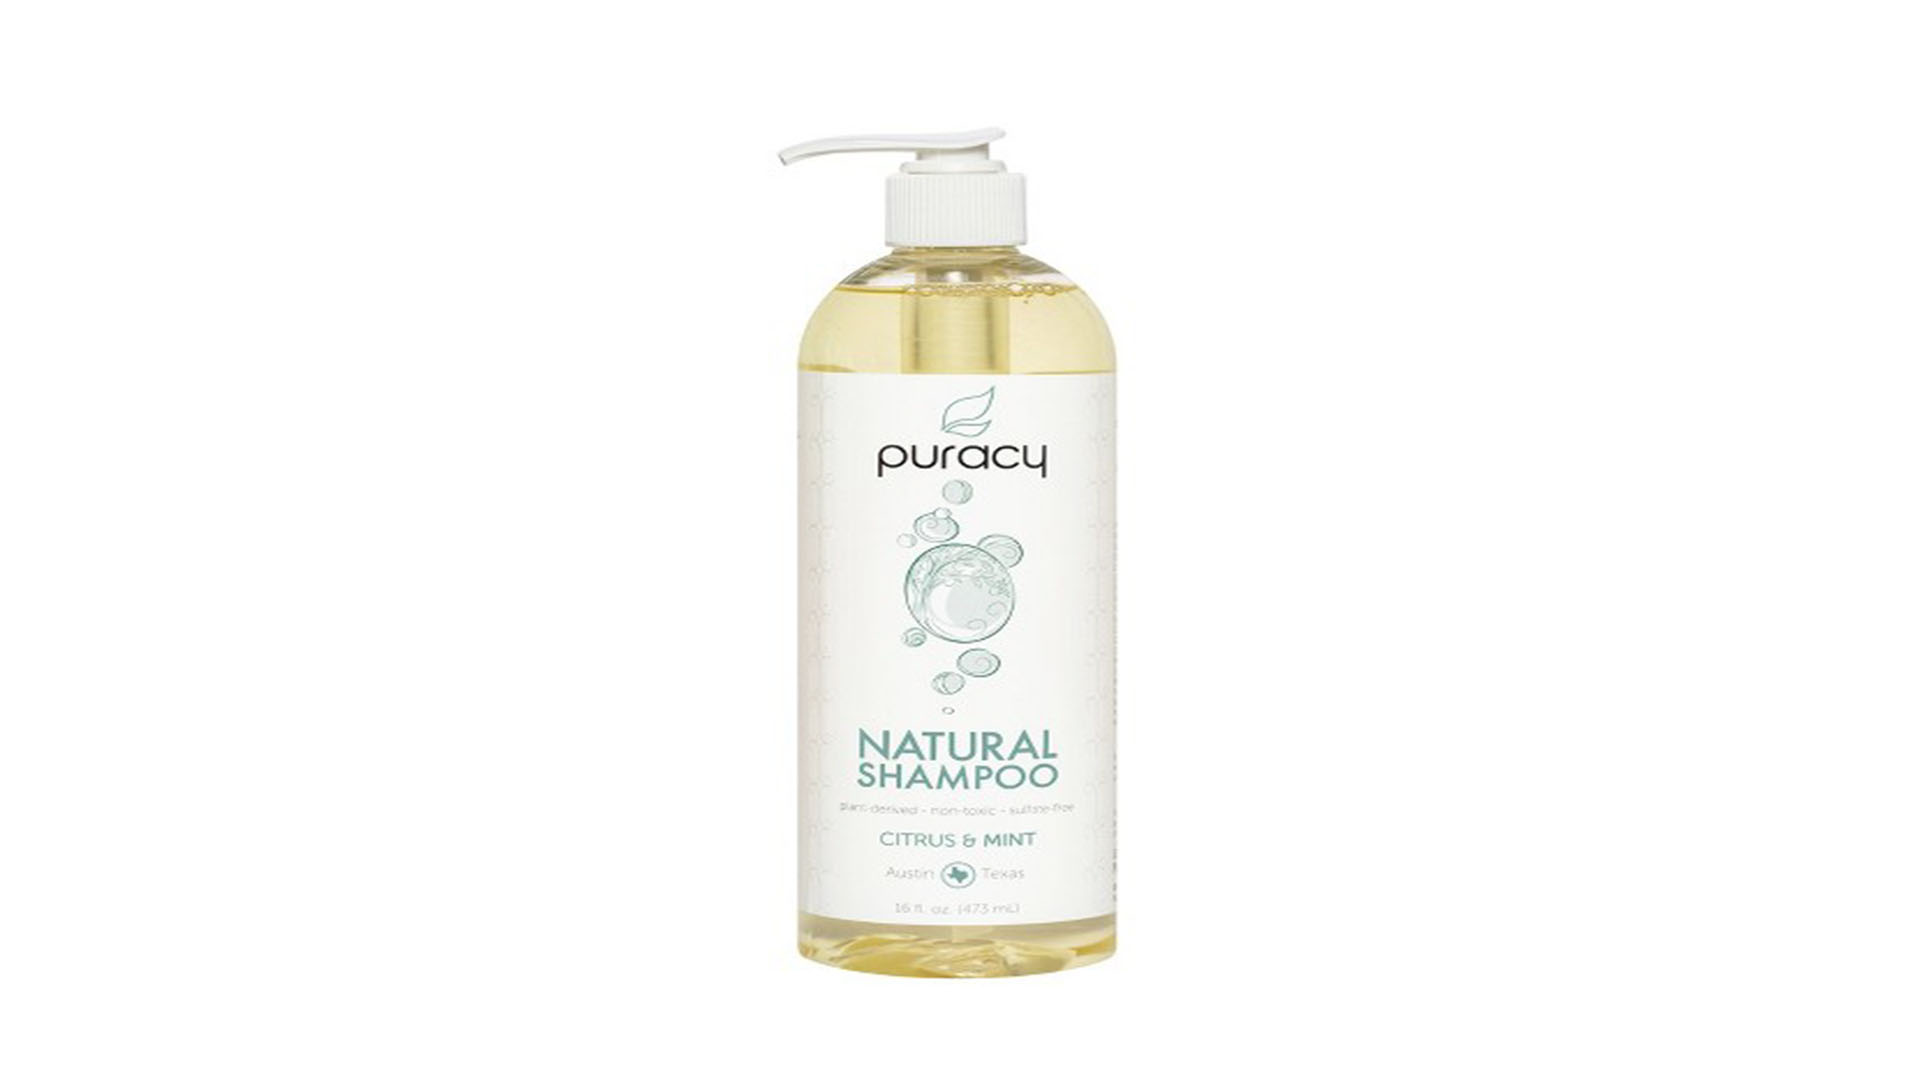 Puracy Citrus & Mint Sulfate-Free Natural Daily Shampoo